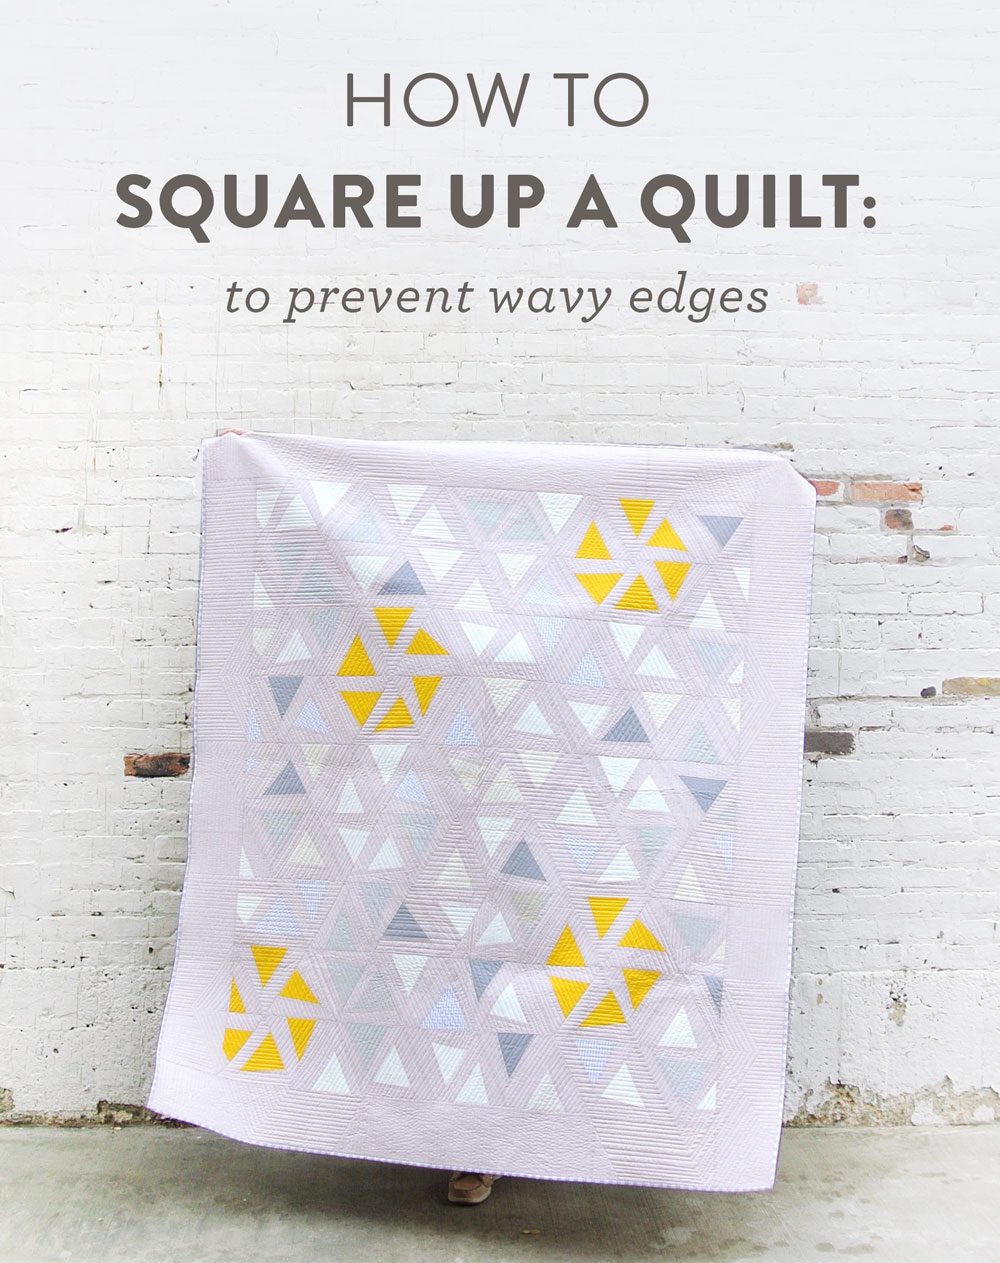 A fun blog series answering all of your basic quilting questions. Have you wondered how to square up a quilt? Let me show you!